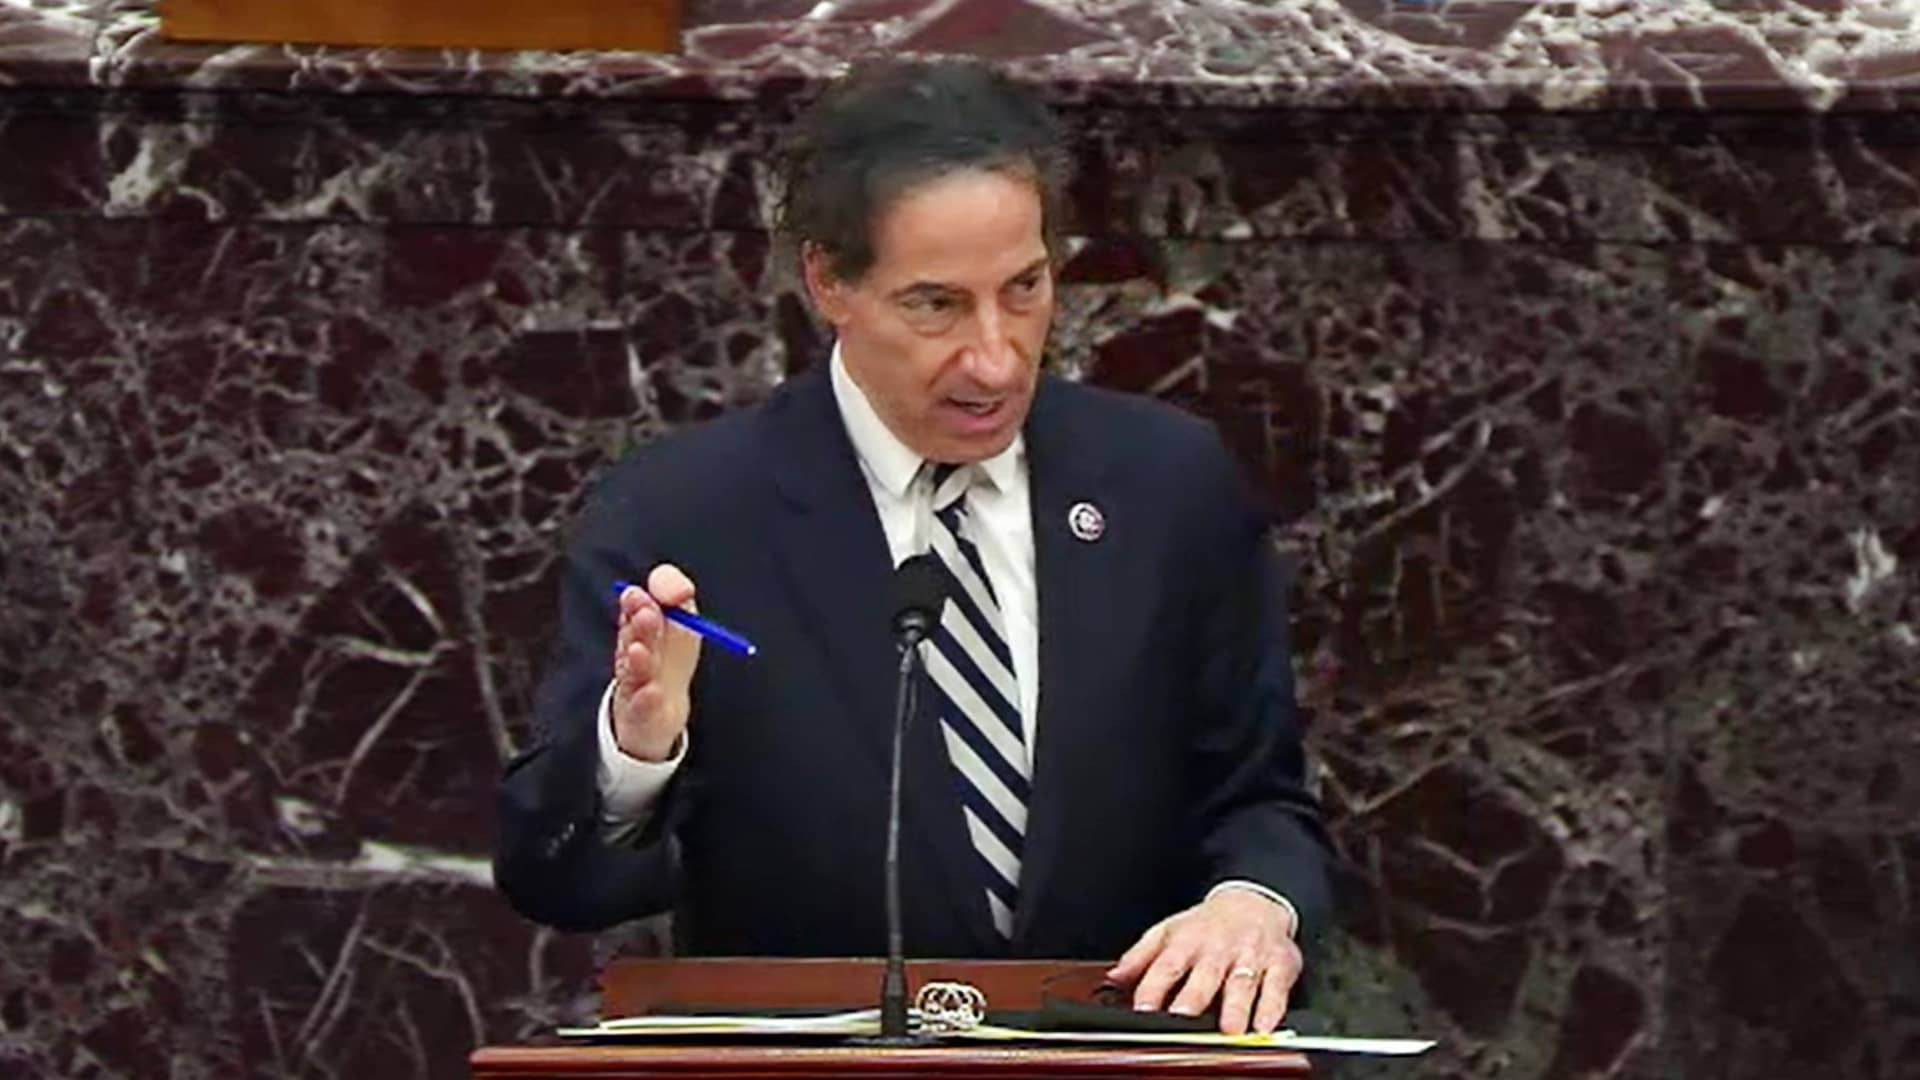 In this screenshot taken from a congress.gov webcast, Lead Impeachment Manager Rep. Jamie Raskin (D-MD) speaks on the third day of former President Donald Trump's second impeachment trial at the U.S. Capitol on February 11, 2021 in Washington, DC.